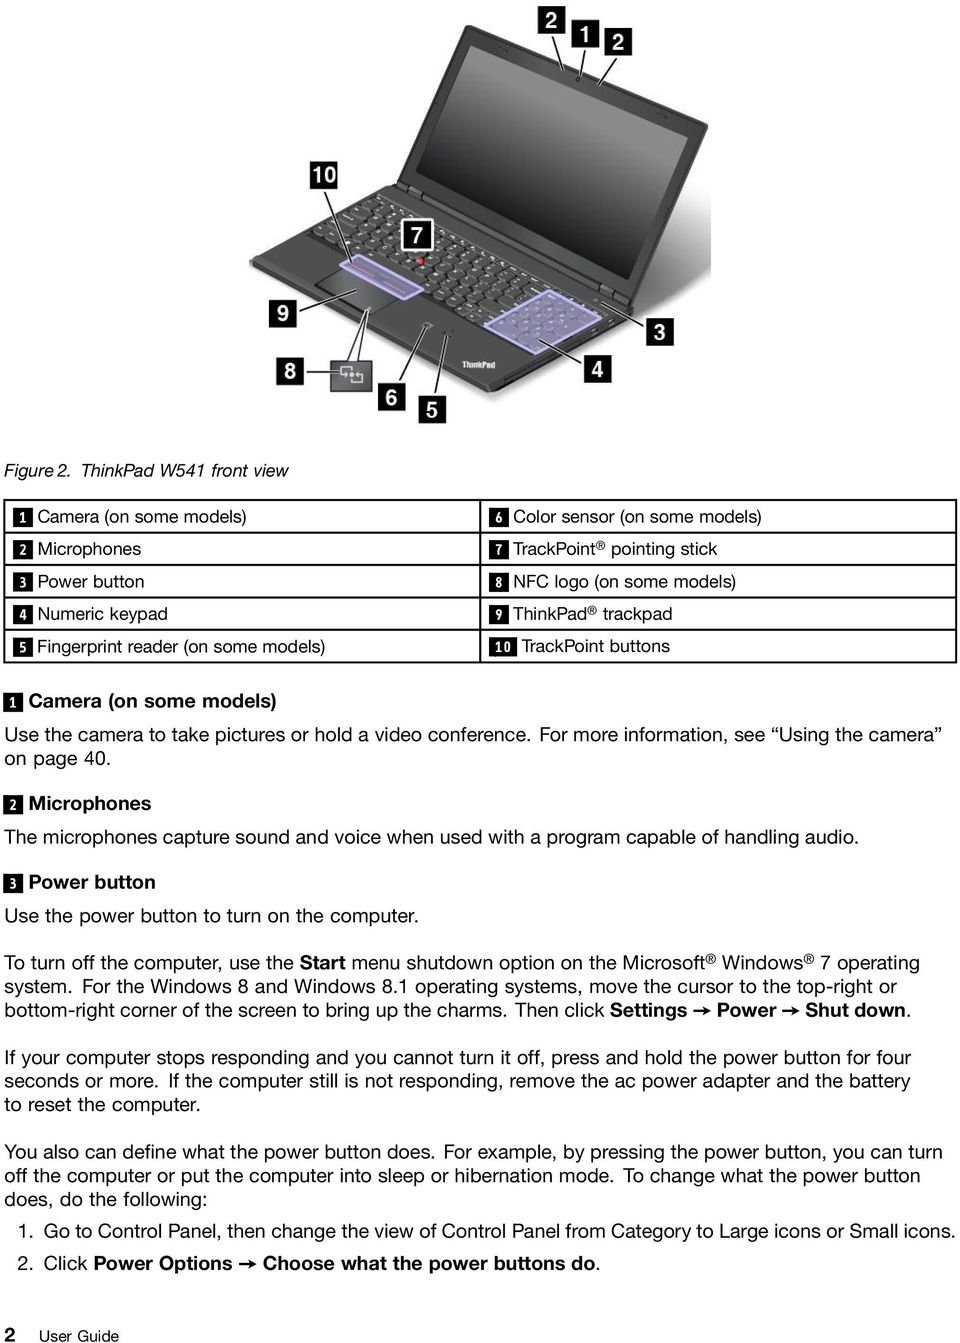 User Guide  ThinkPad T540p, W540, and W541 - PDF